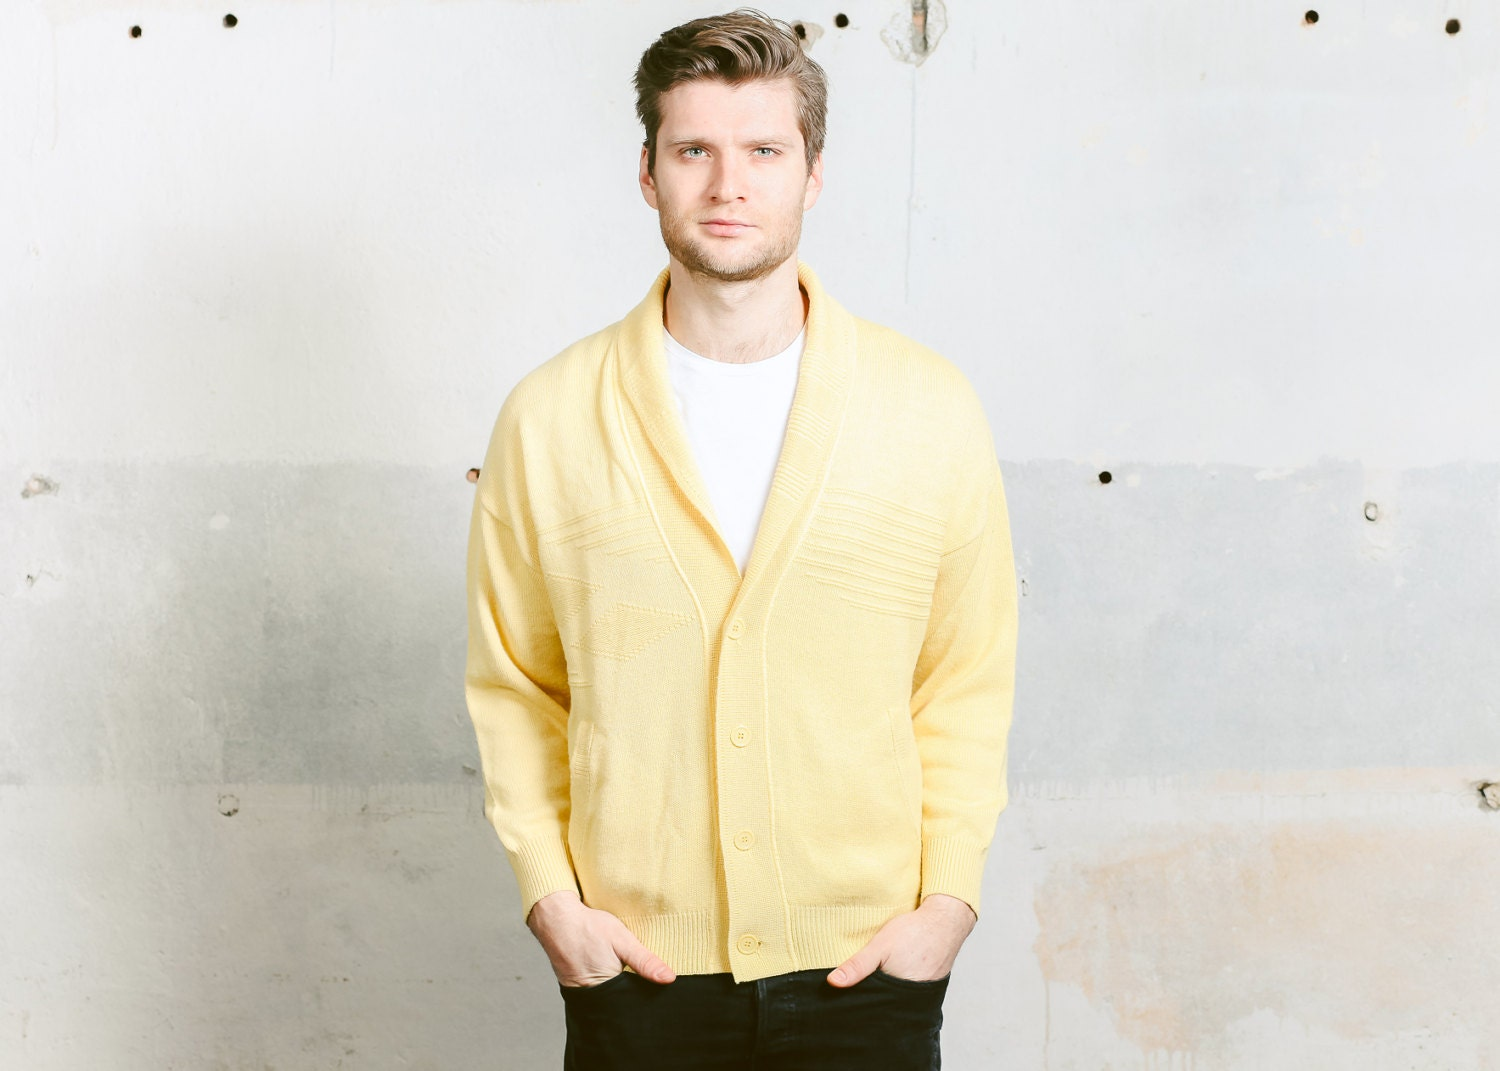 SHAWL COLLAR Cardigan Sweater . Oversized Mens Yellow Wool